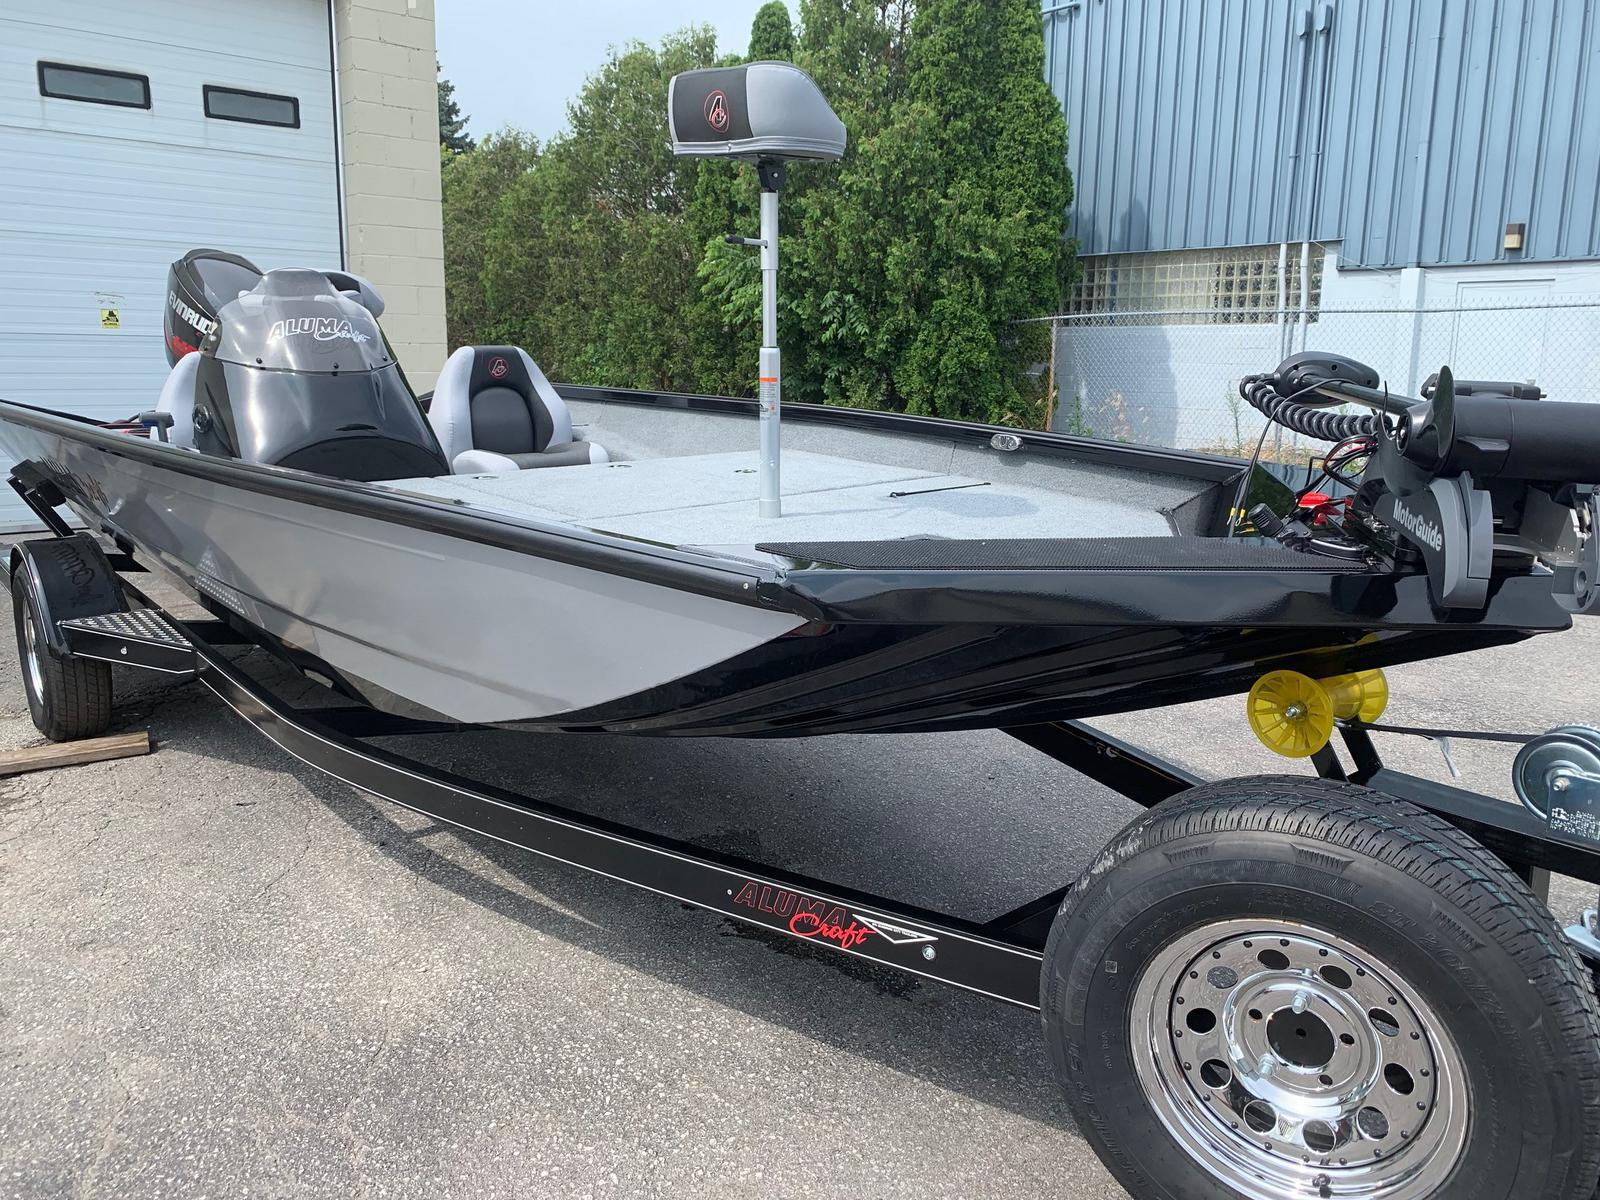 Inventory Howell's Marine Sales & Service Chatham, ON (519) 360-9202